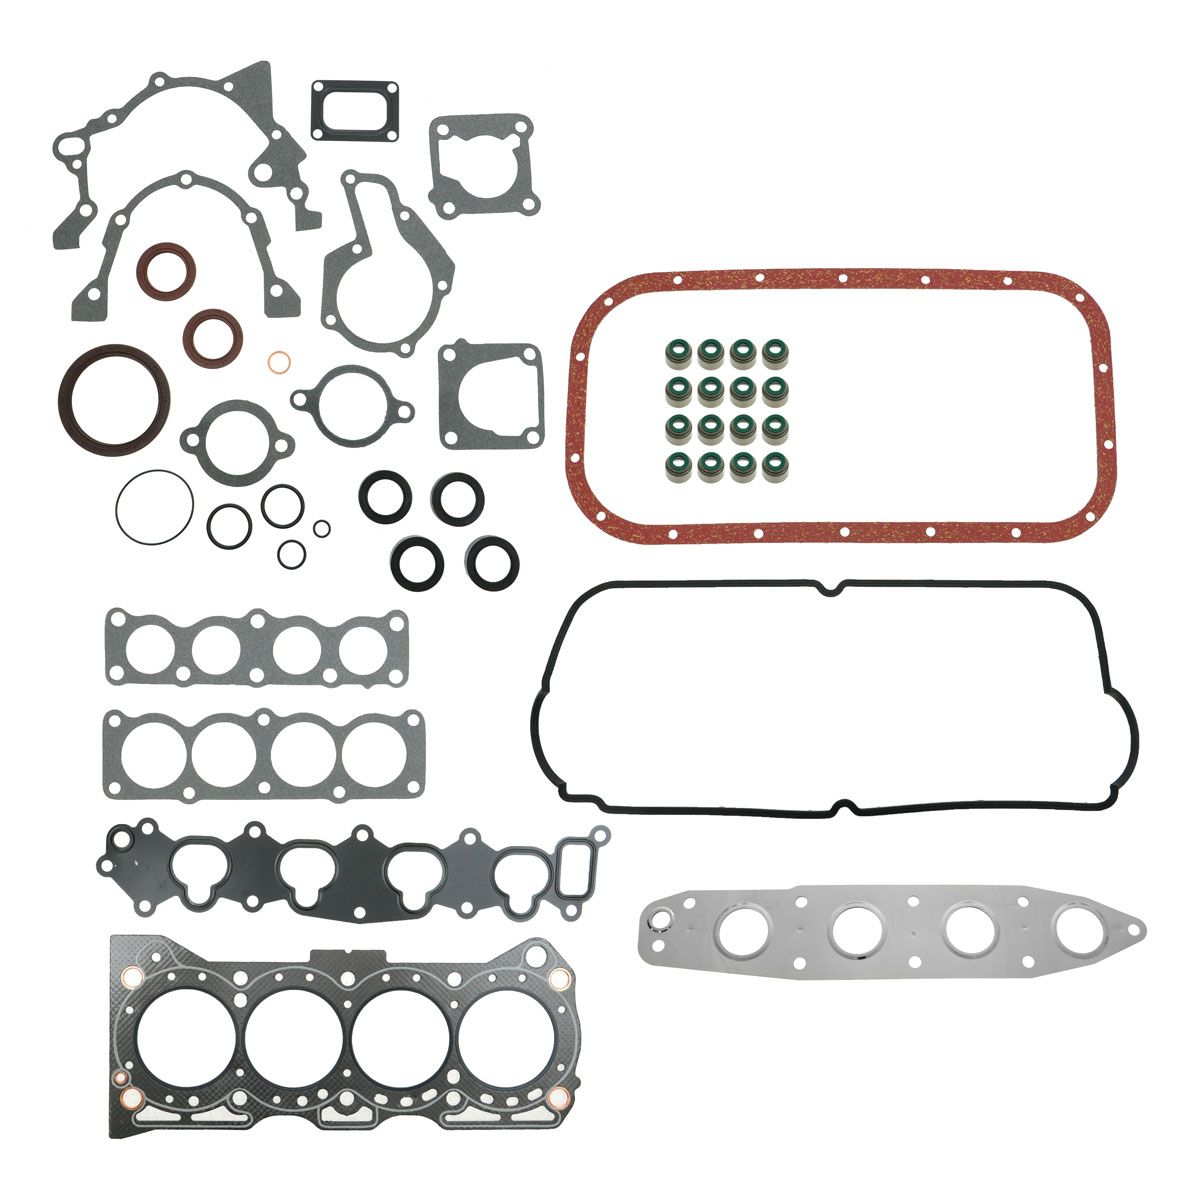 Complete Engine Head Intake Manifold Gasket Set For Chevy